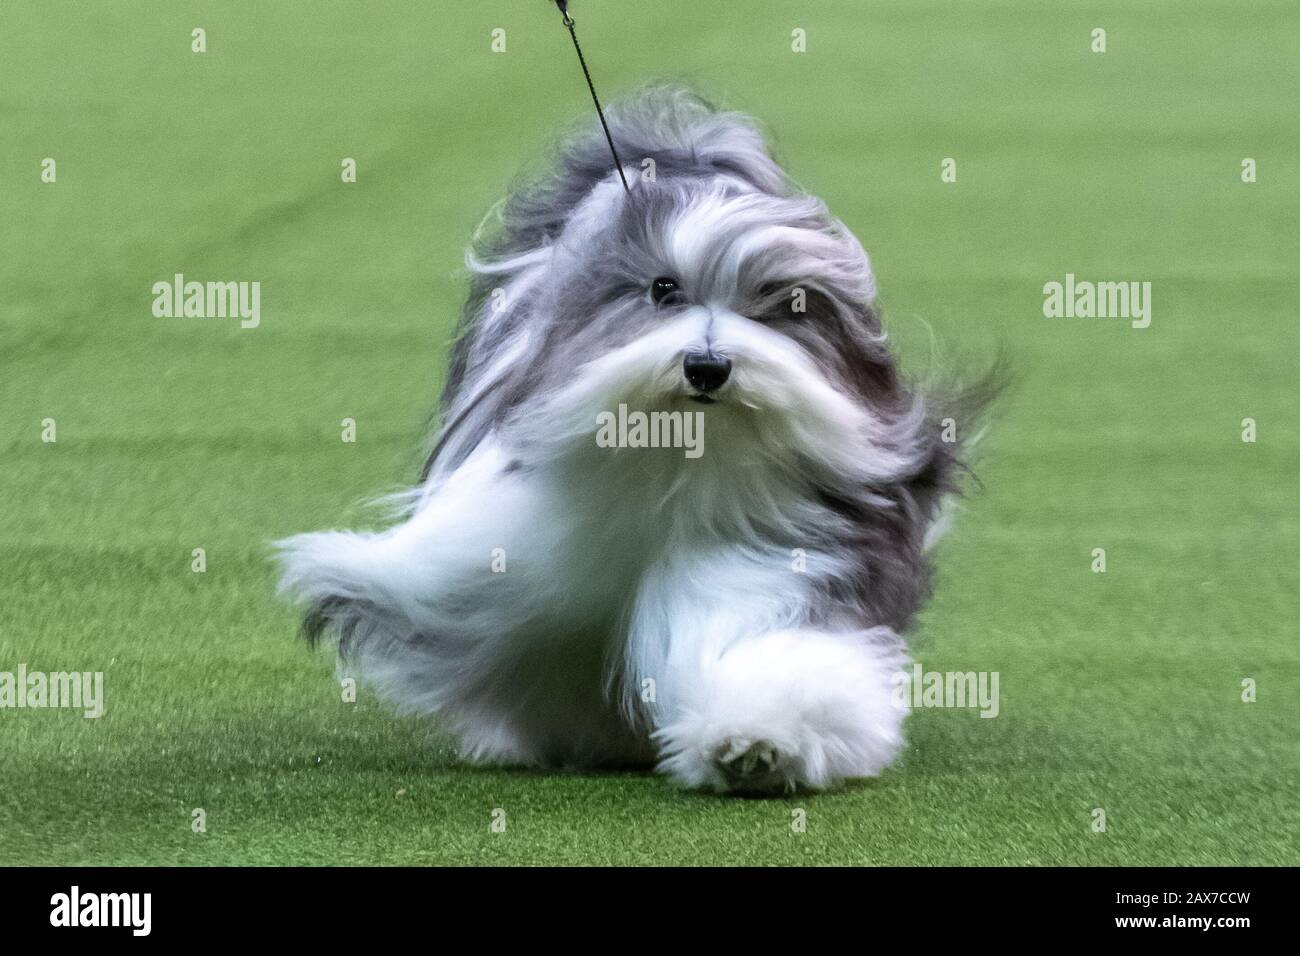 """New York, USA. 10th Feb, 2020. """"Bono"""" the Havanese competes to win the Toy group category at the 144th Westminster Kennel Club Dog show in New York city's Madison Square Garden.  Bono's formal competition name is Oeste's In The Name Of Love.  Credit: Enrique Shore/Alamy Live News Stock Photo"""